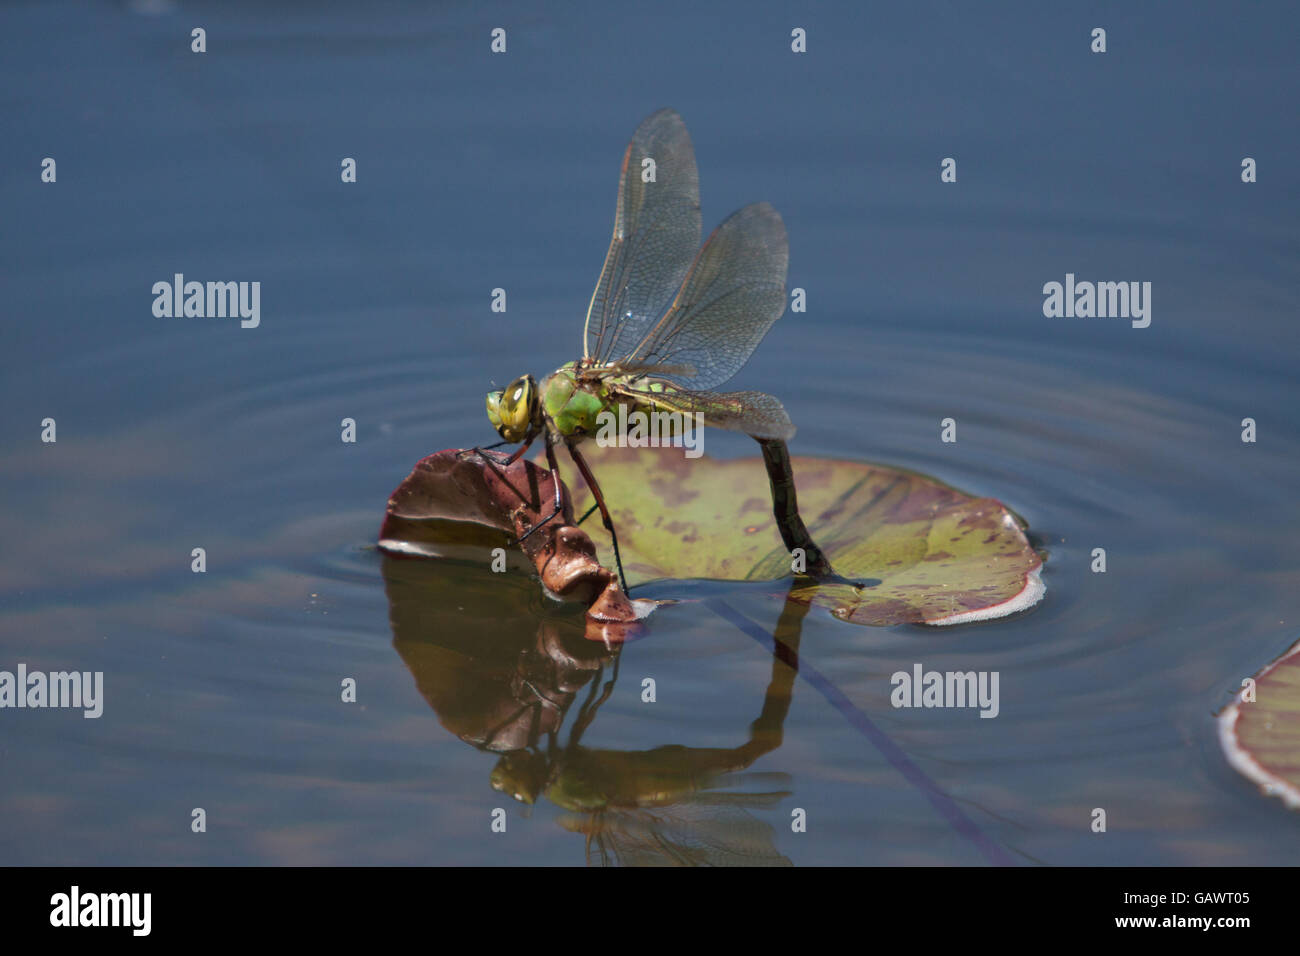 Lily Pad Dragonfly Stock Photos & Lily Pad Dragonfly Stock Images ...